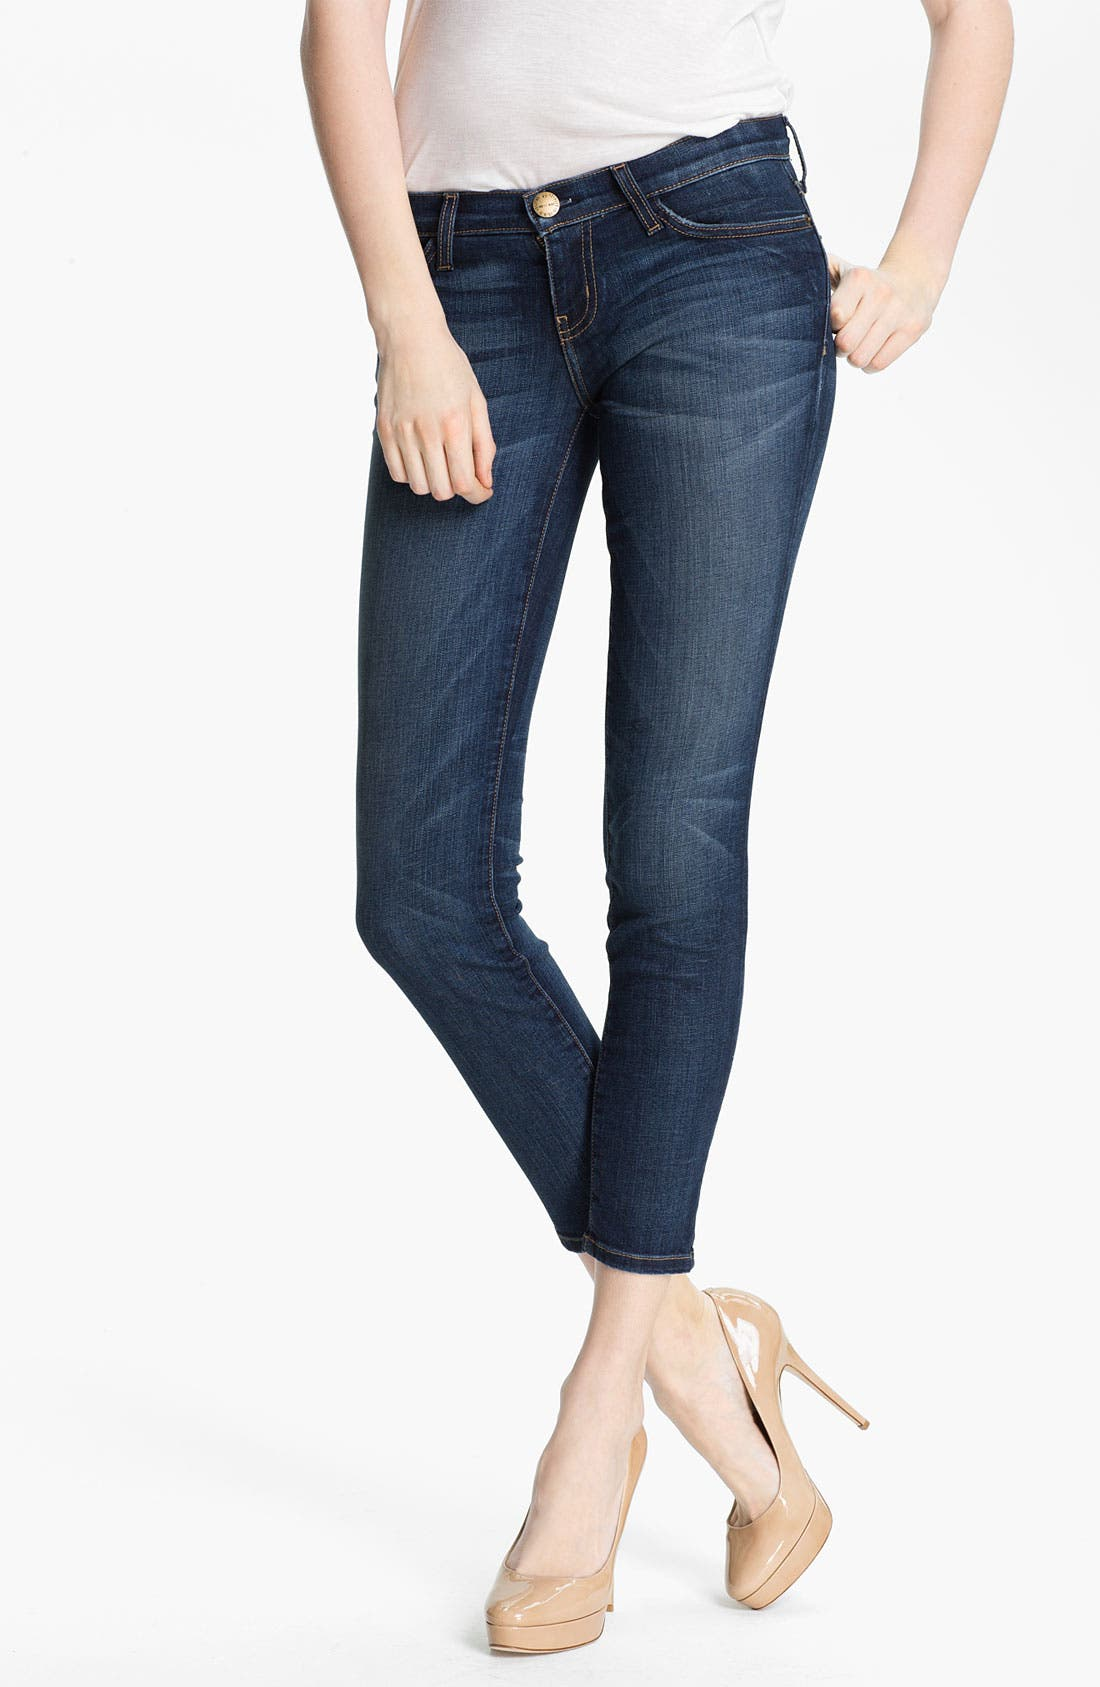 'The Stiletto' Stretch Jeans,                             Main thumbnail 1, color,                             477